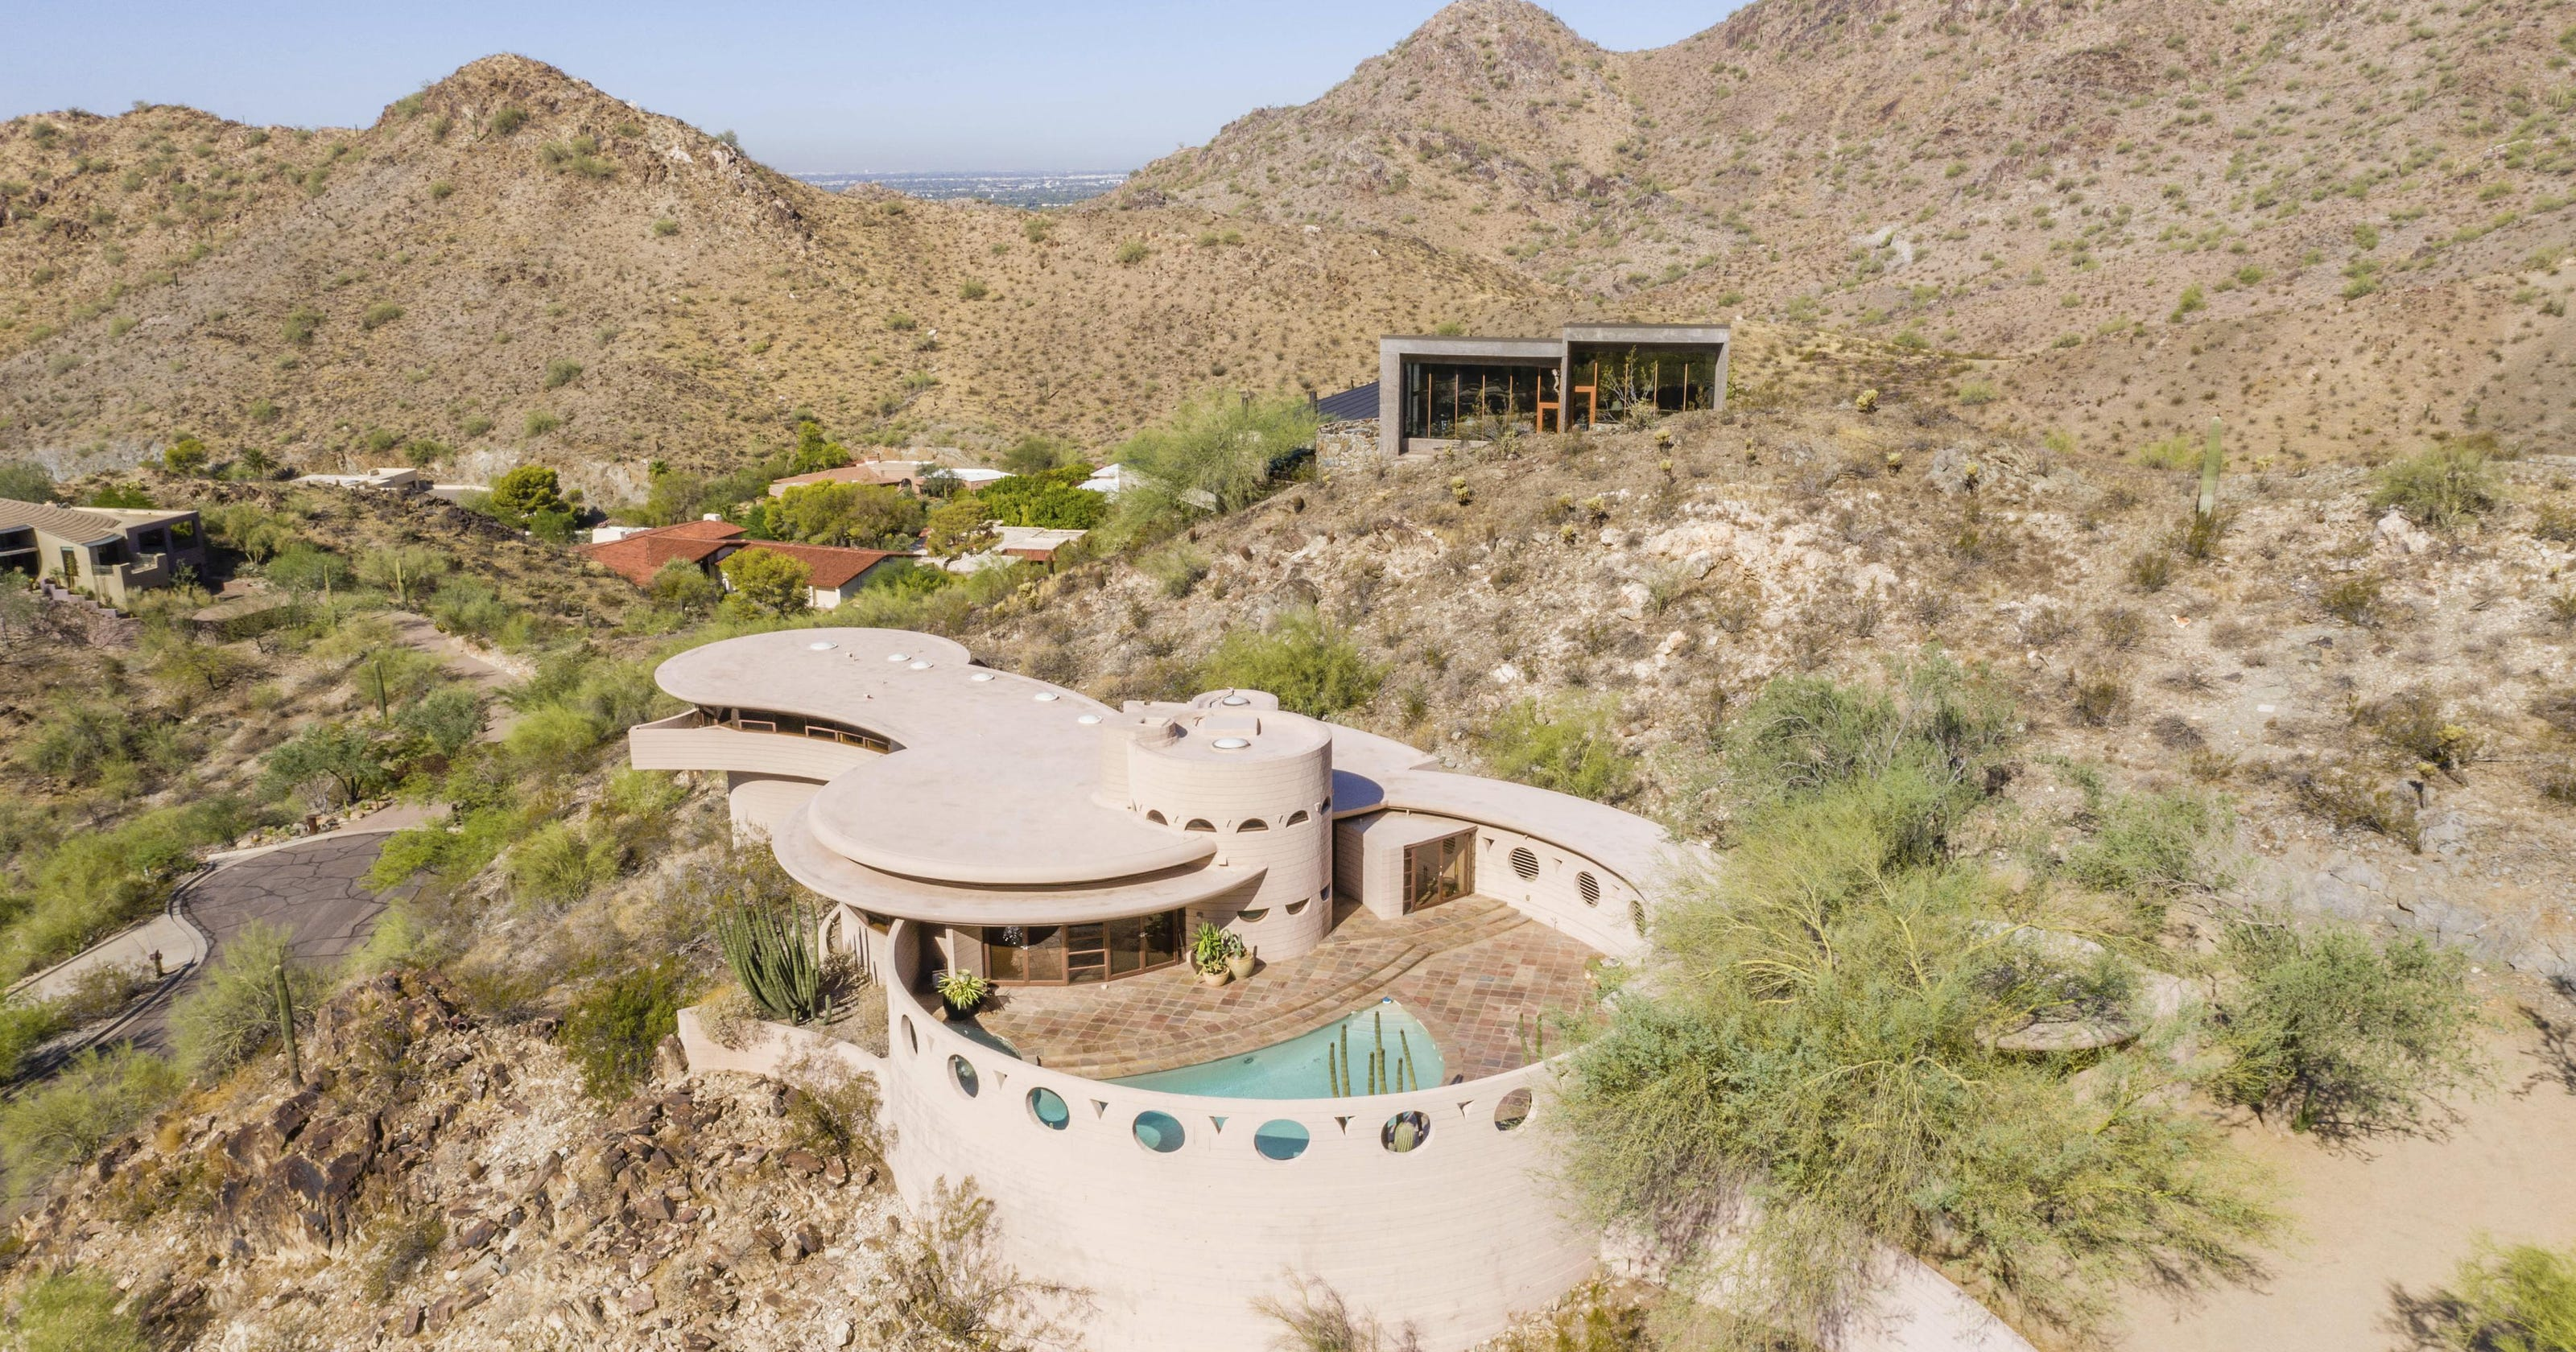 Circular Sun House, Billie Jean King, Adnan Syed: News from around our 50 states